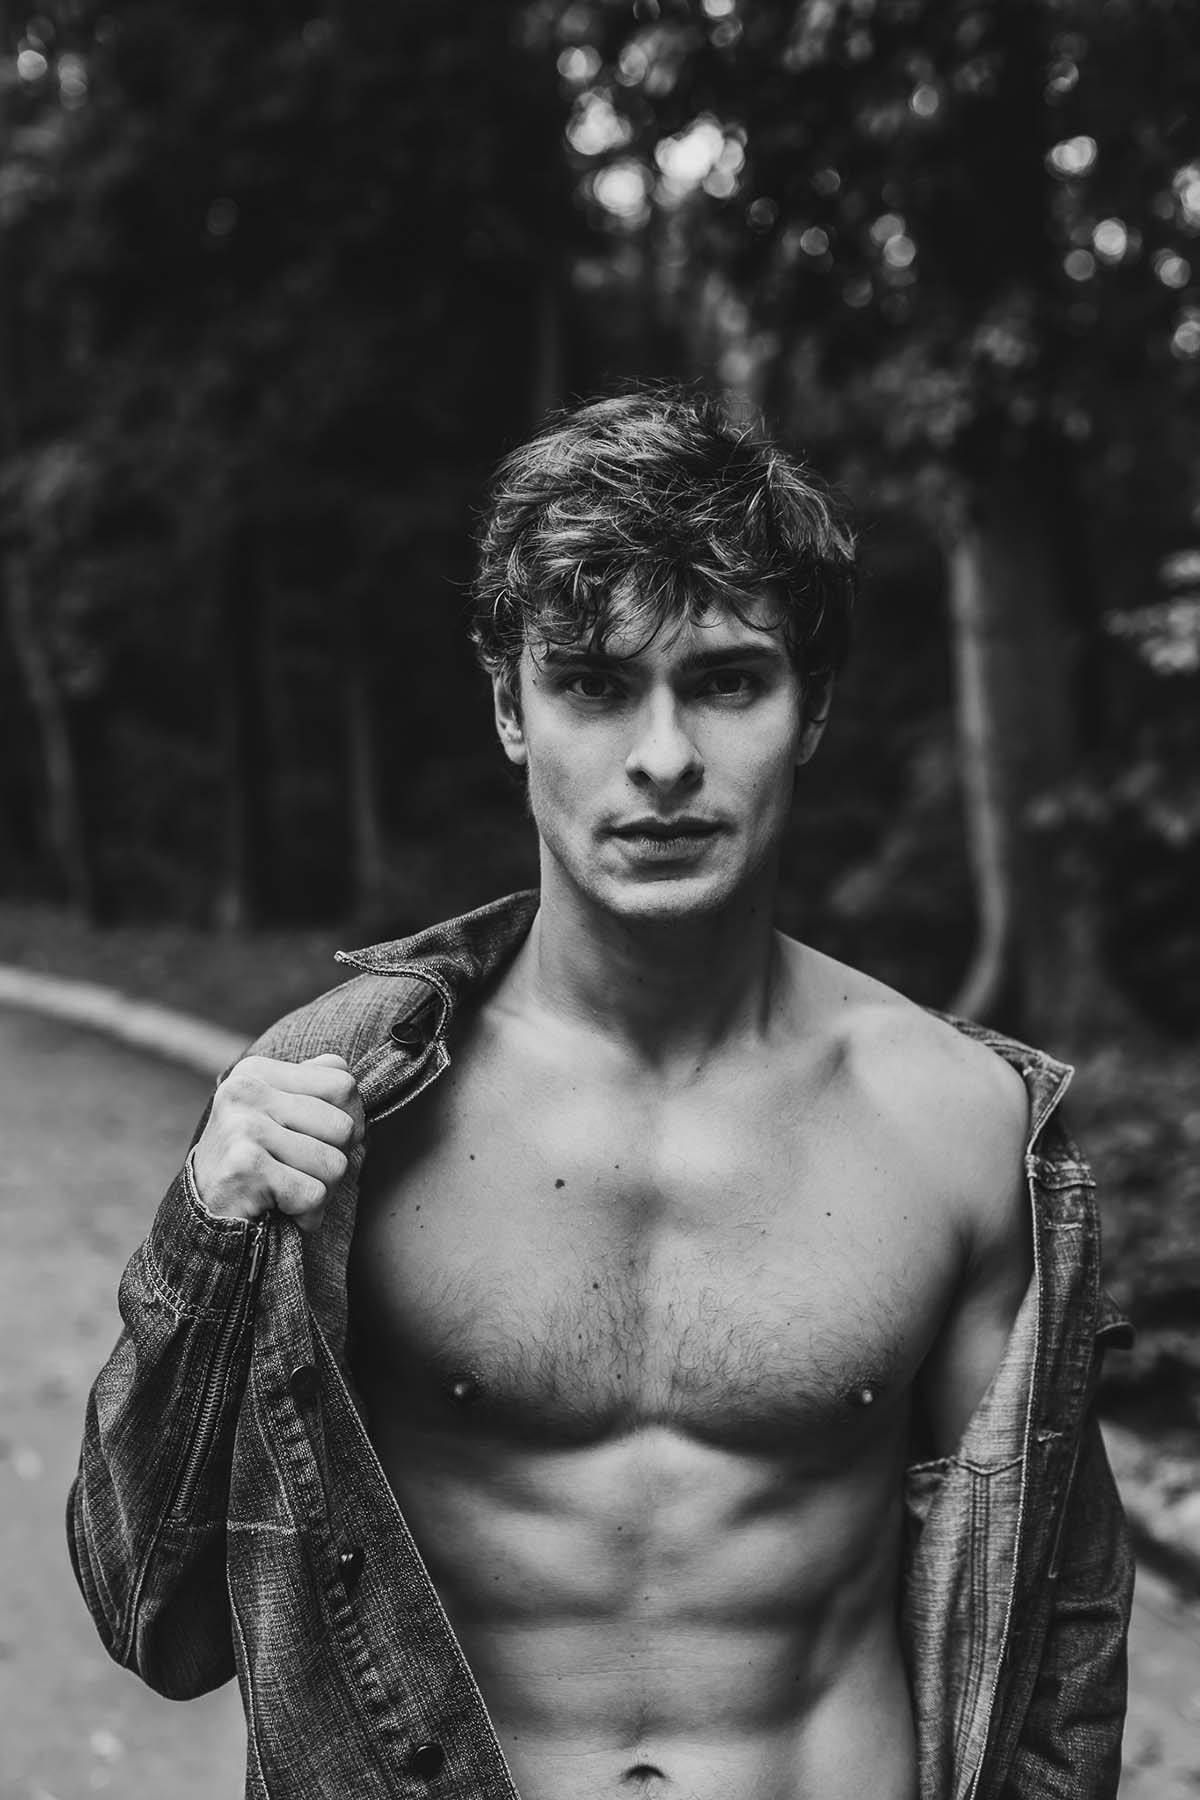 Leandro Juliani by Ernandês Marques for Brazilian Male Model